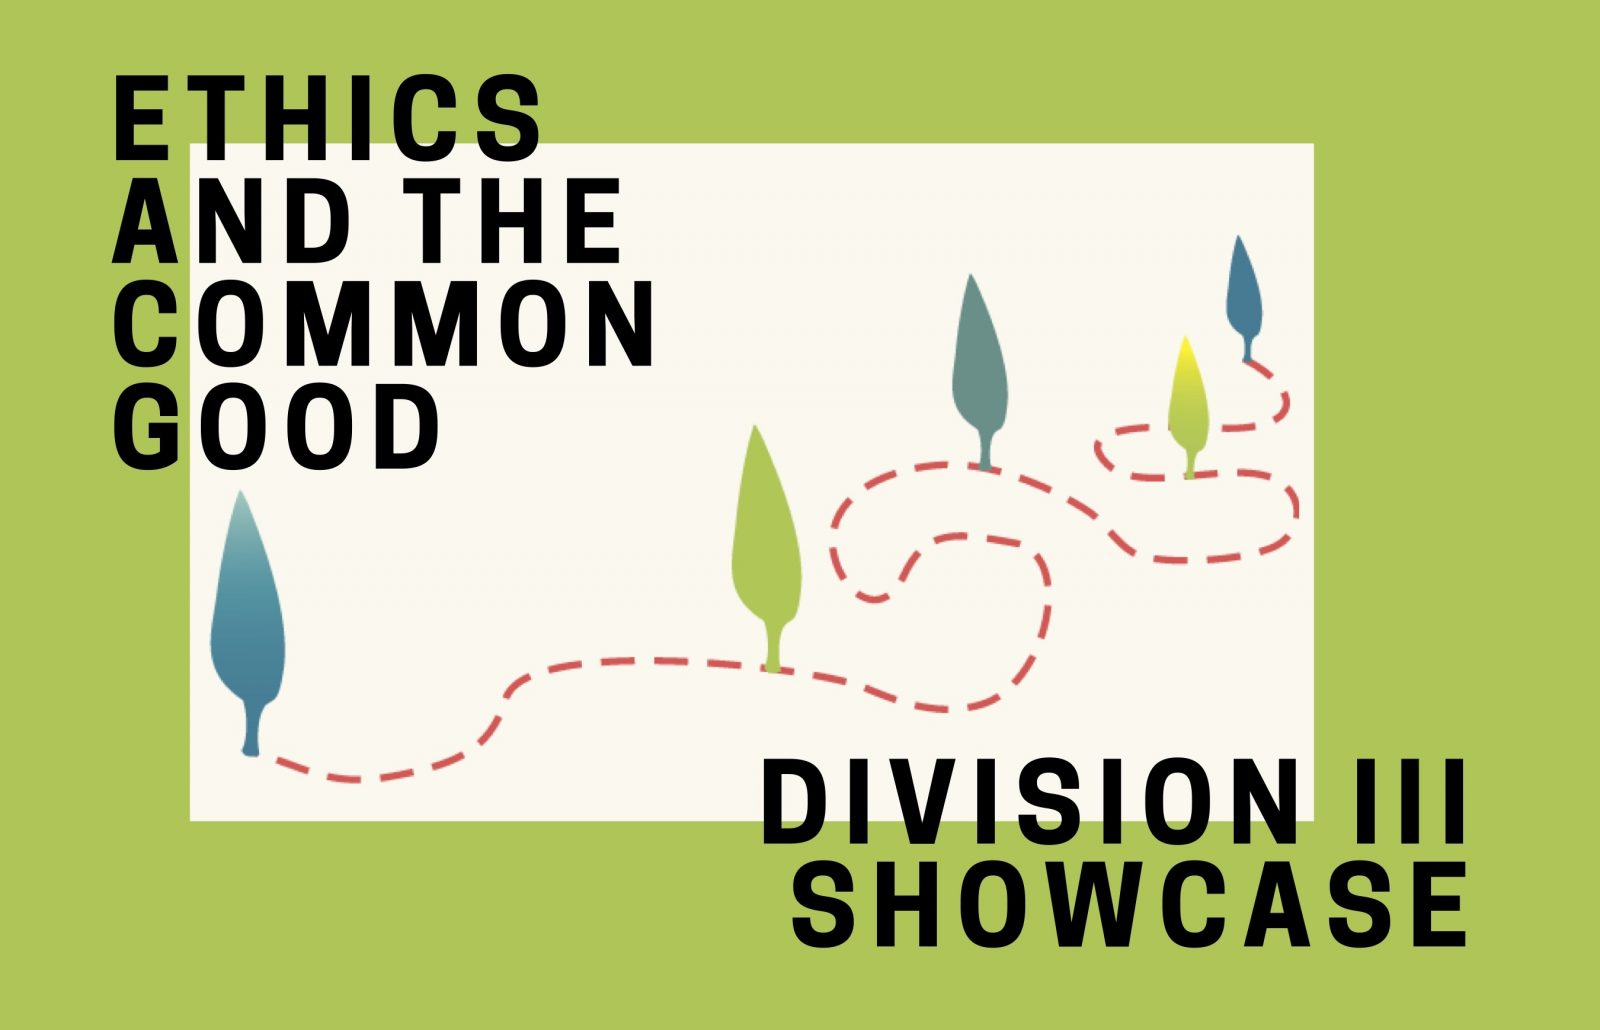 """Text of """"Ethics and the Common Good Division III Showcase"""" on green and white background with leaf graphic on a squiggly red dotted line"""